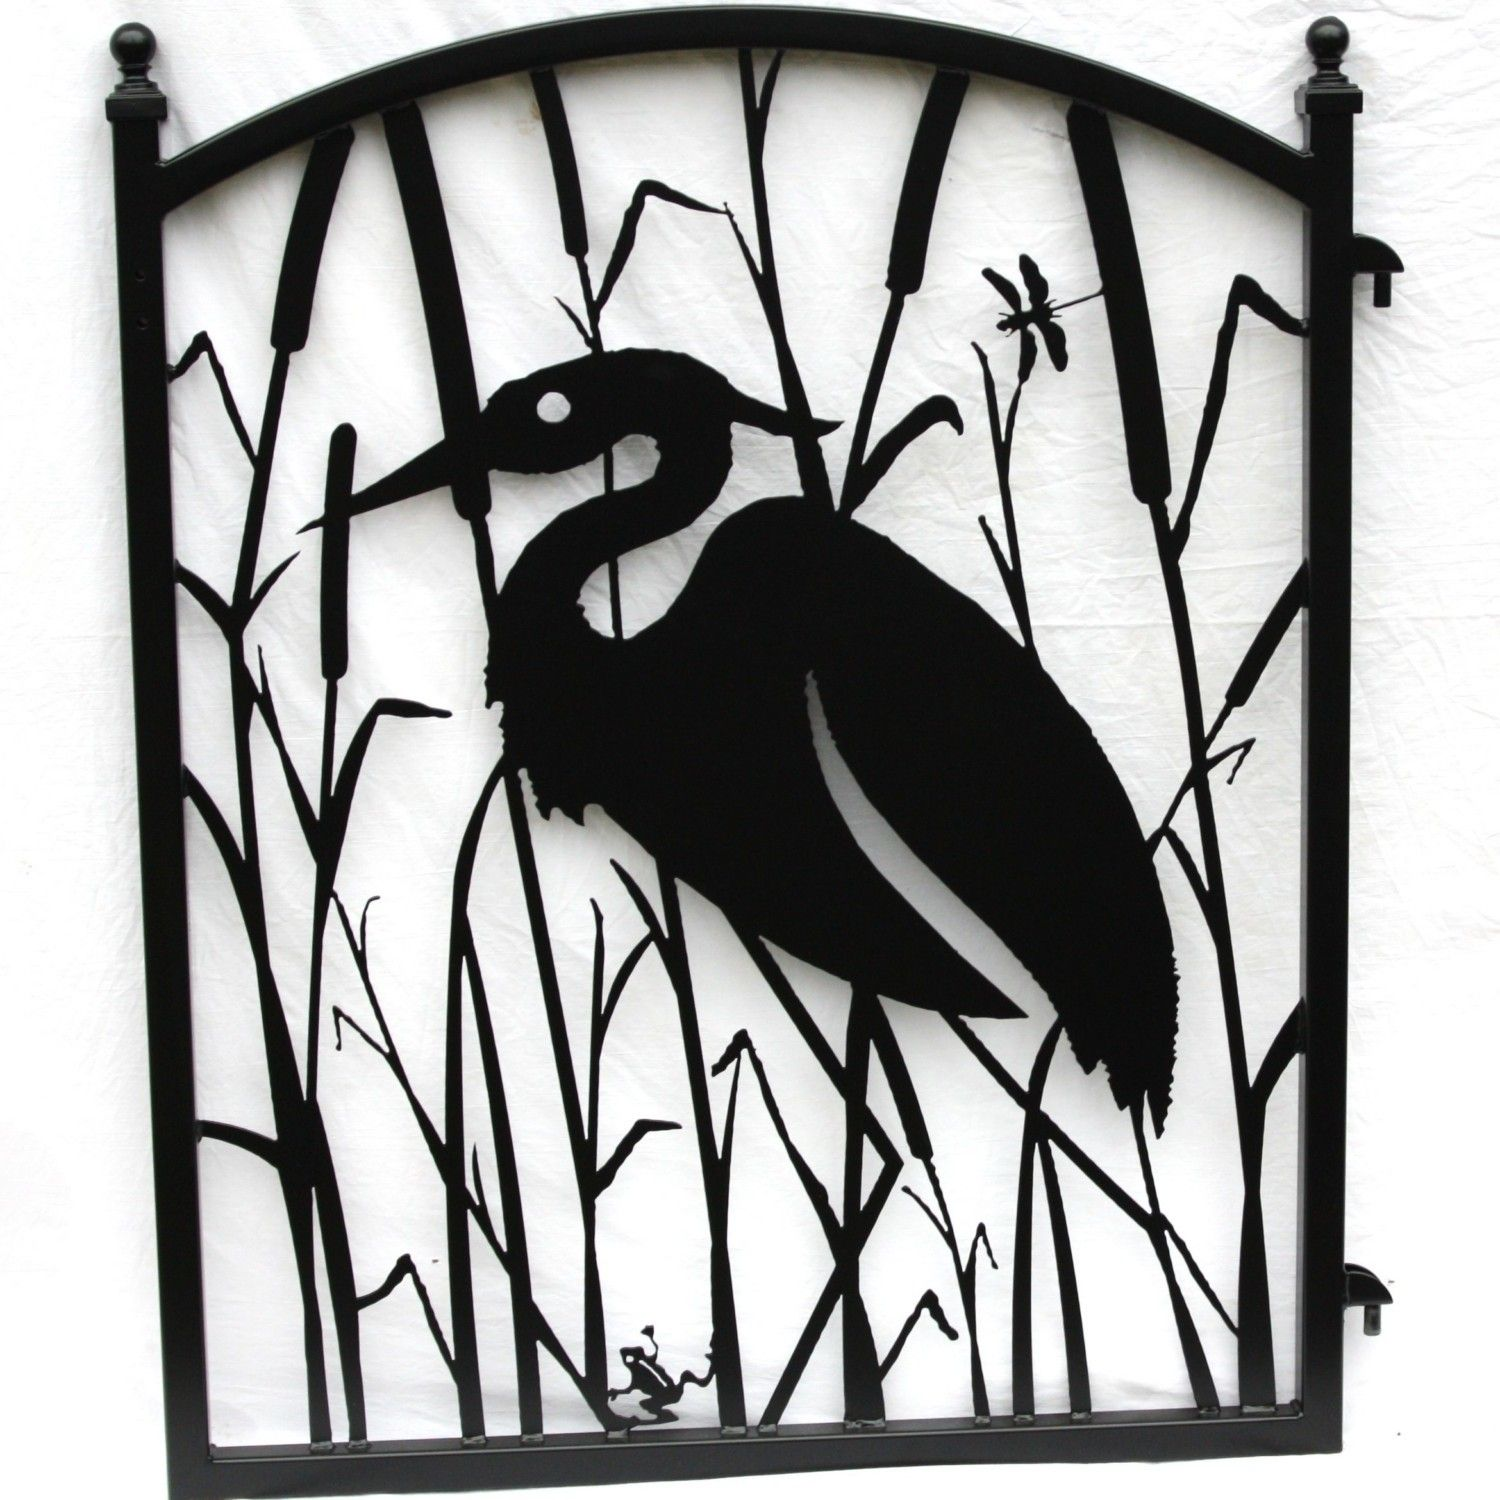 Heron in the Reeds Metal Art Iron Garden Gate 29900 via Etsy